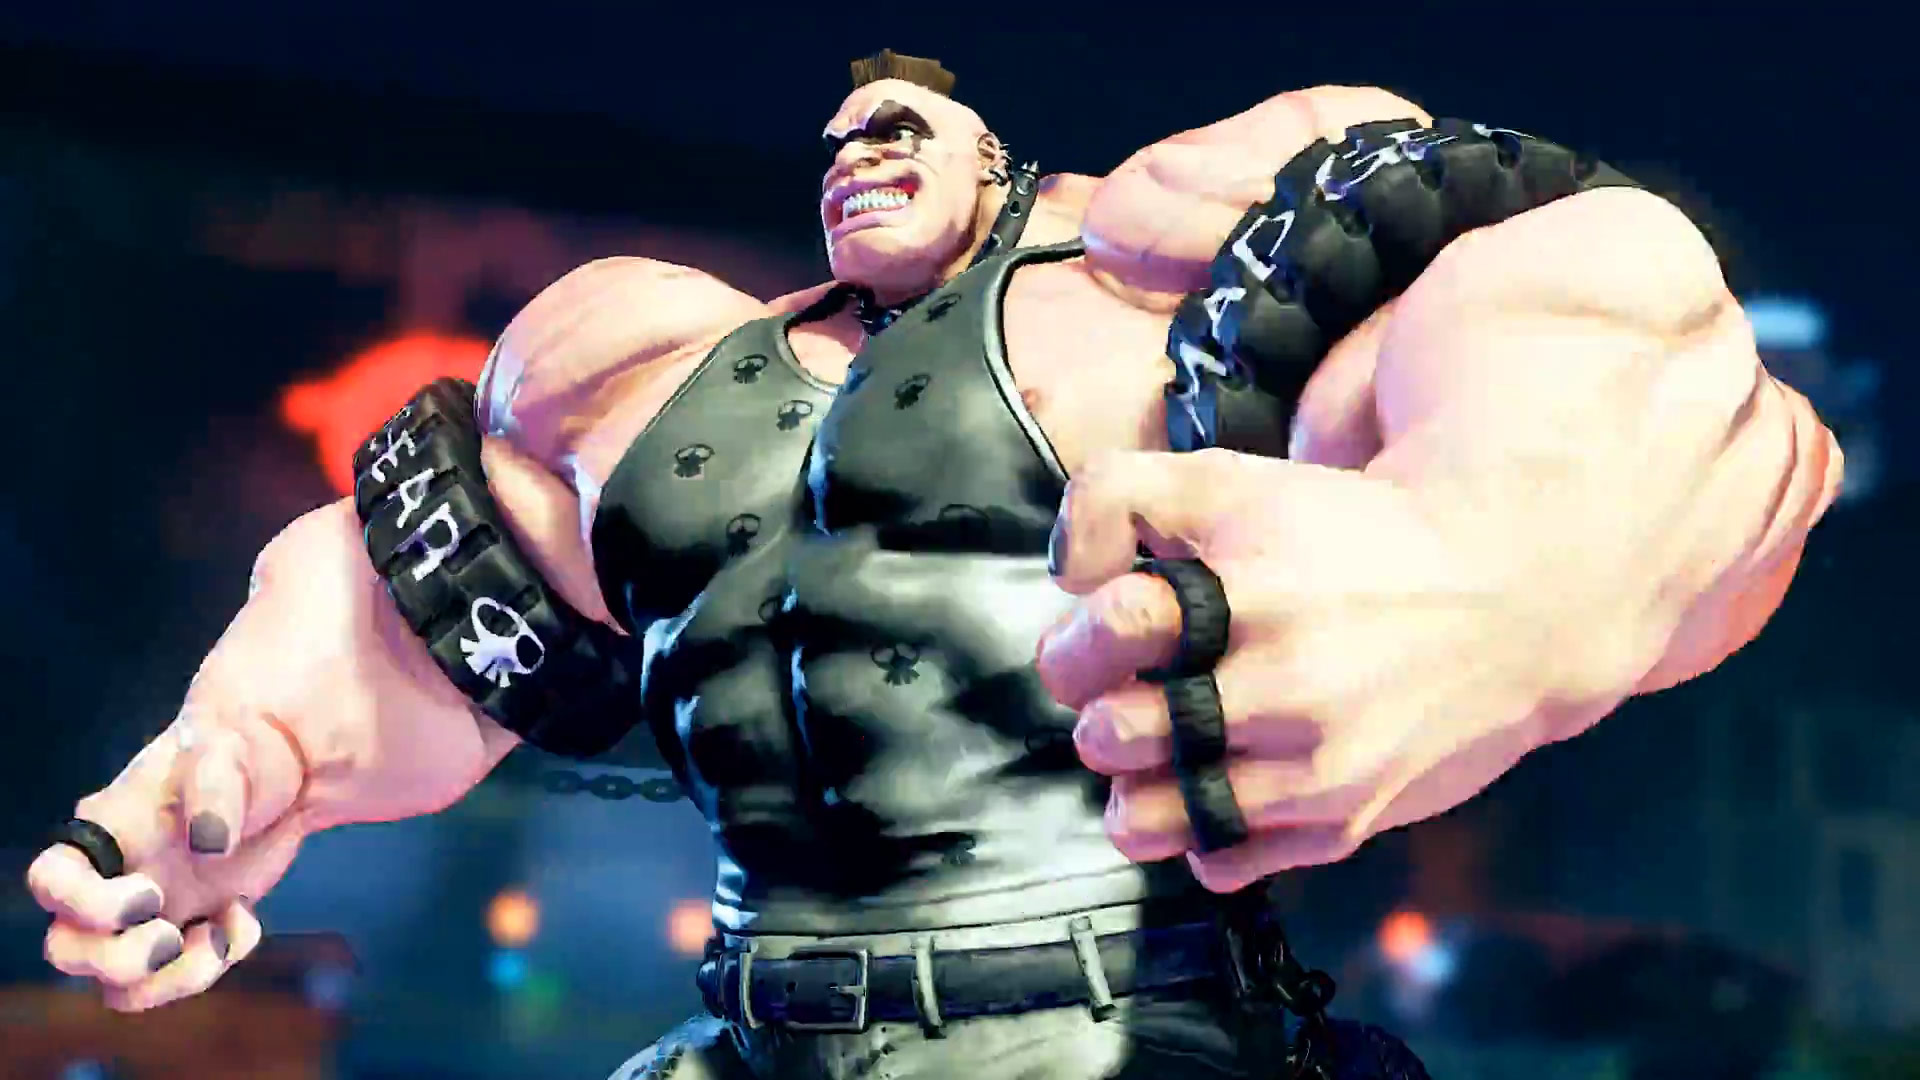 Abigail Street Fighter 5 screen shots 7 out of 11 image gallery